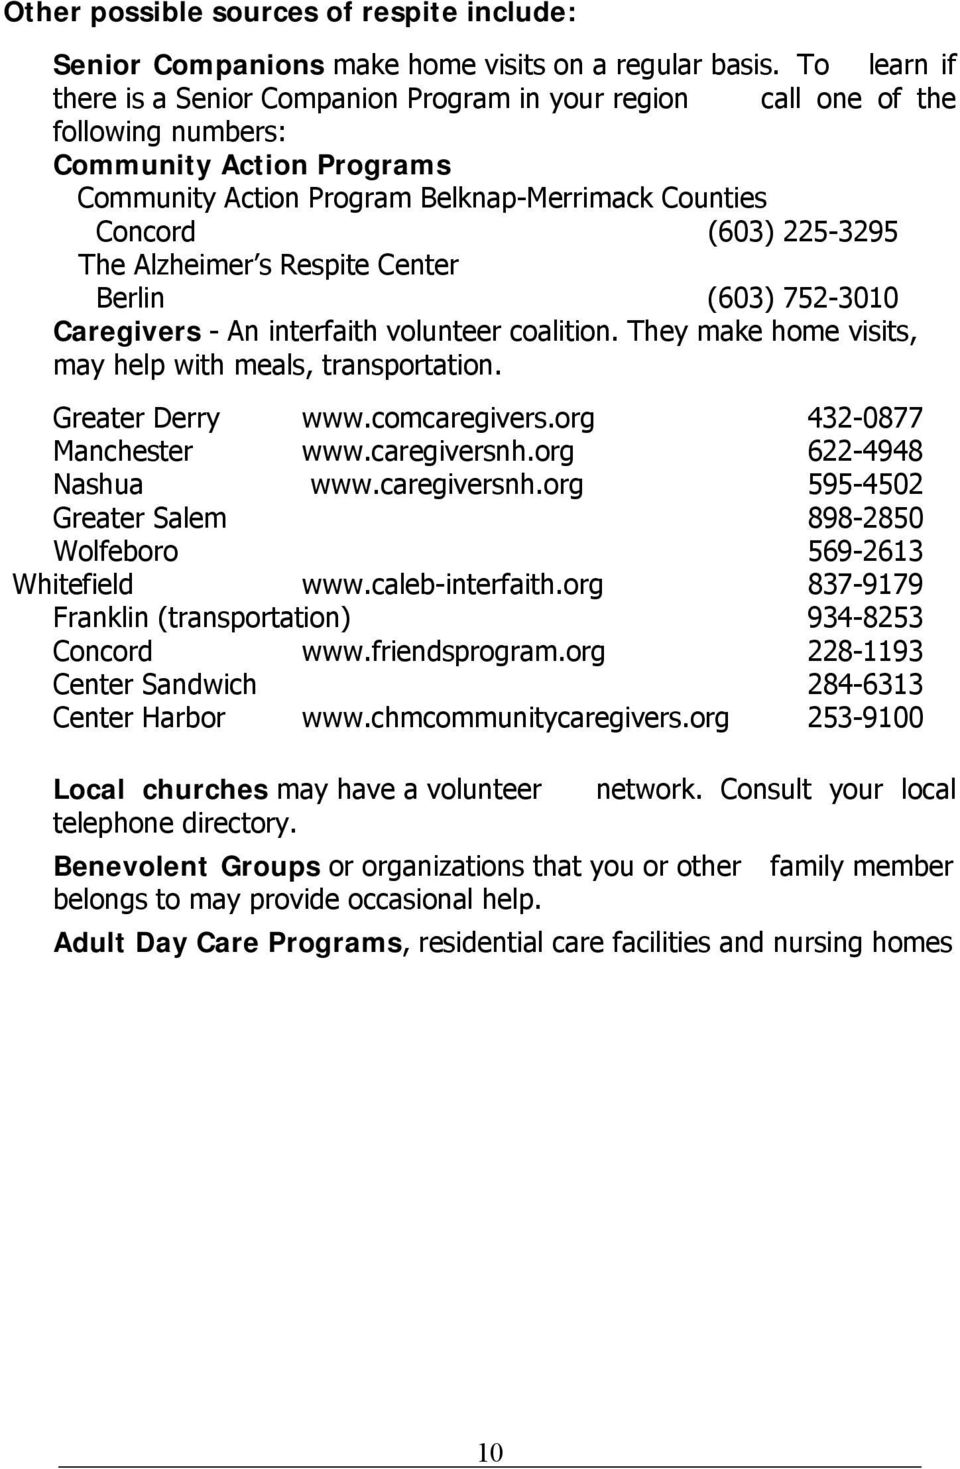 The Alzheimer s Respite Center Berlin (603) 752-3010 Caregivers - An interfaith volunteer coalition. They make home visits, may help with meals, transportation. Greater Derry www.comcaregivers.